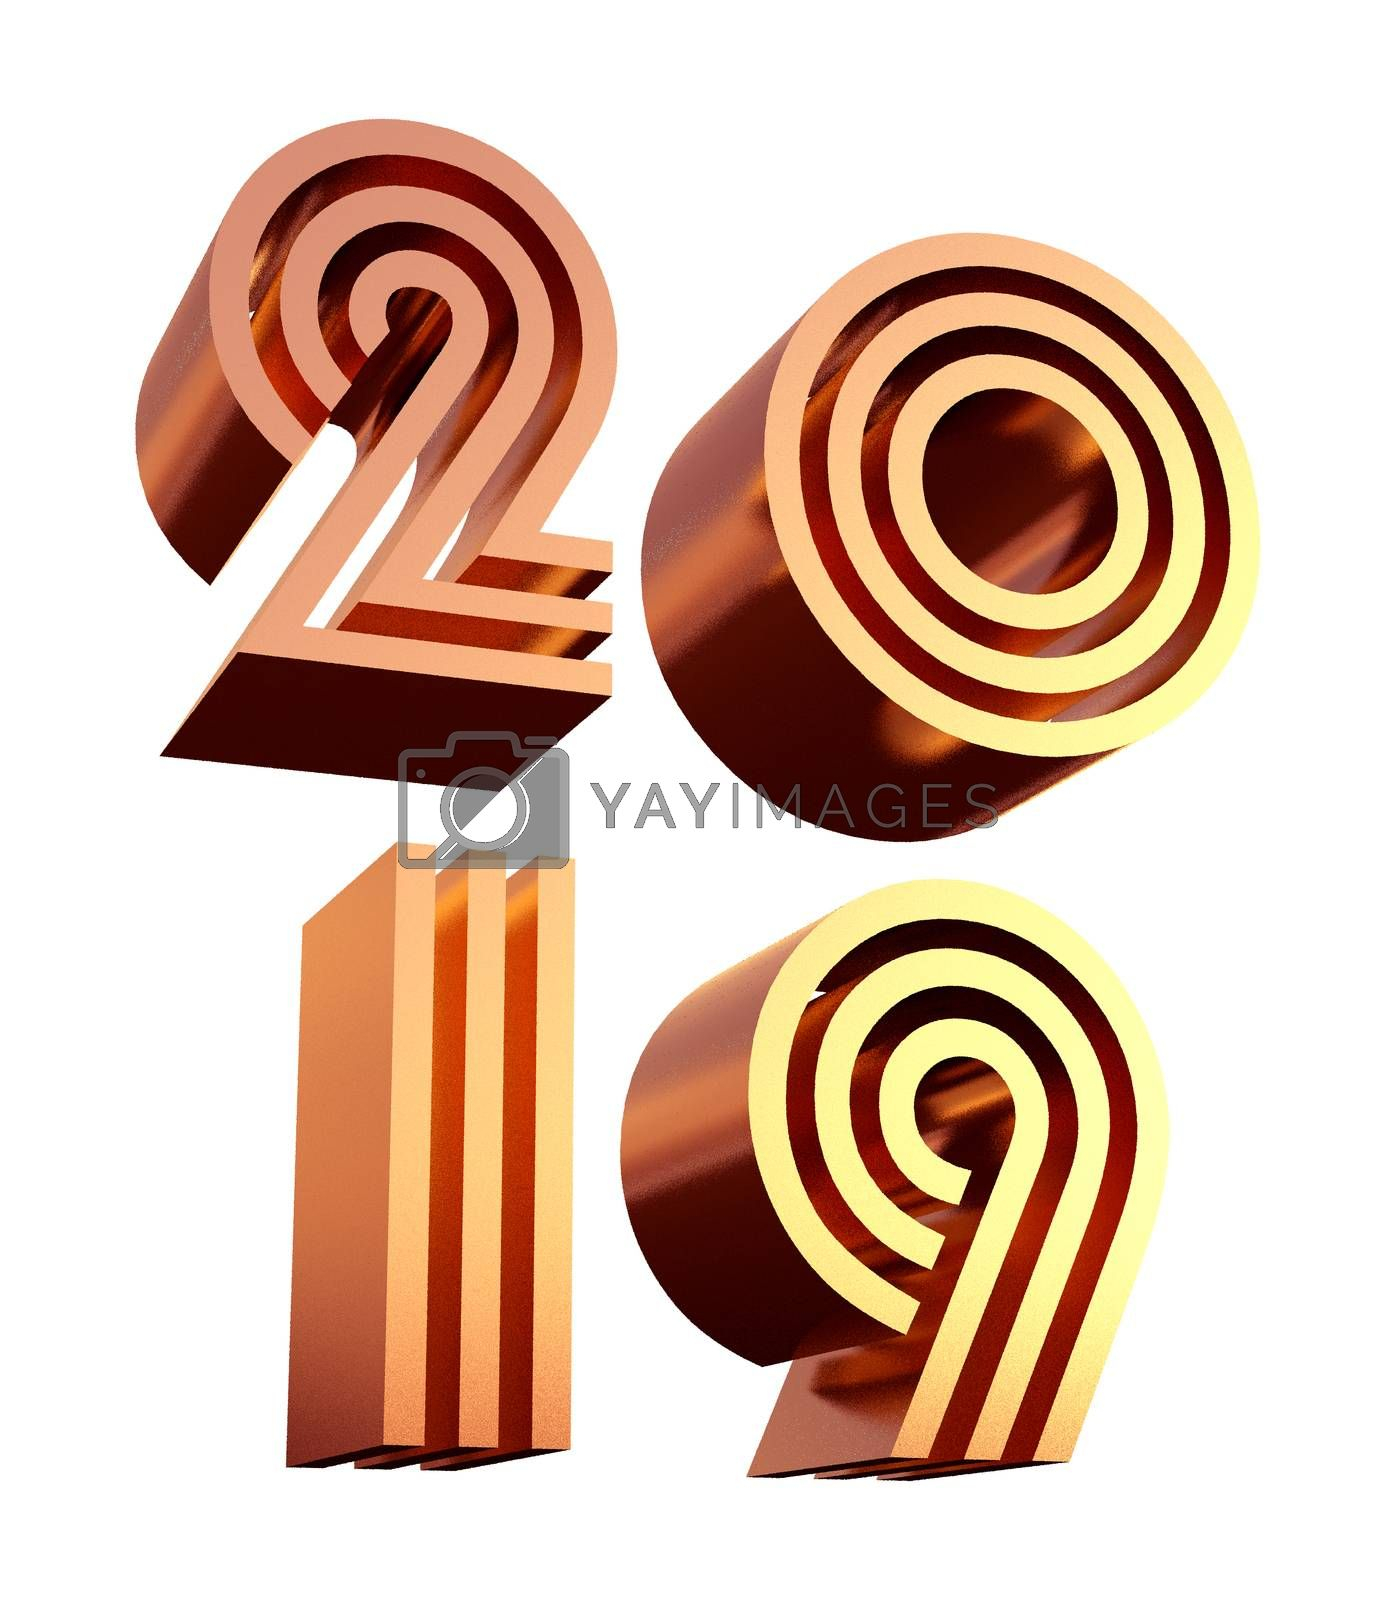 Royalty free image of 2019 bold letters d illustration. by hakankacar2014